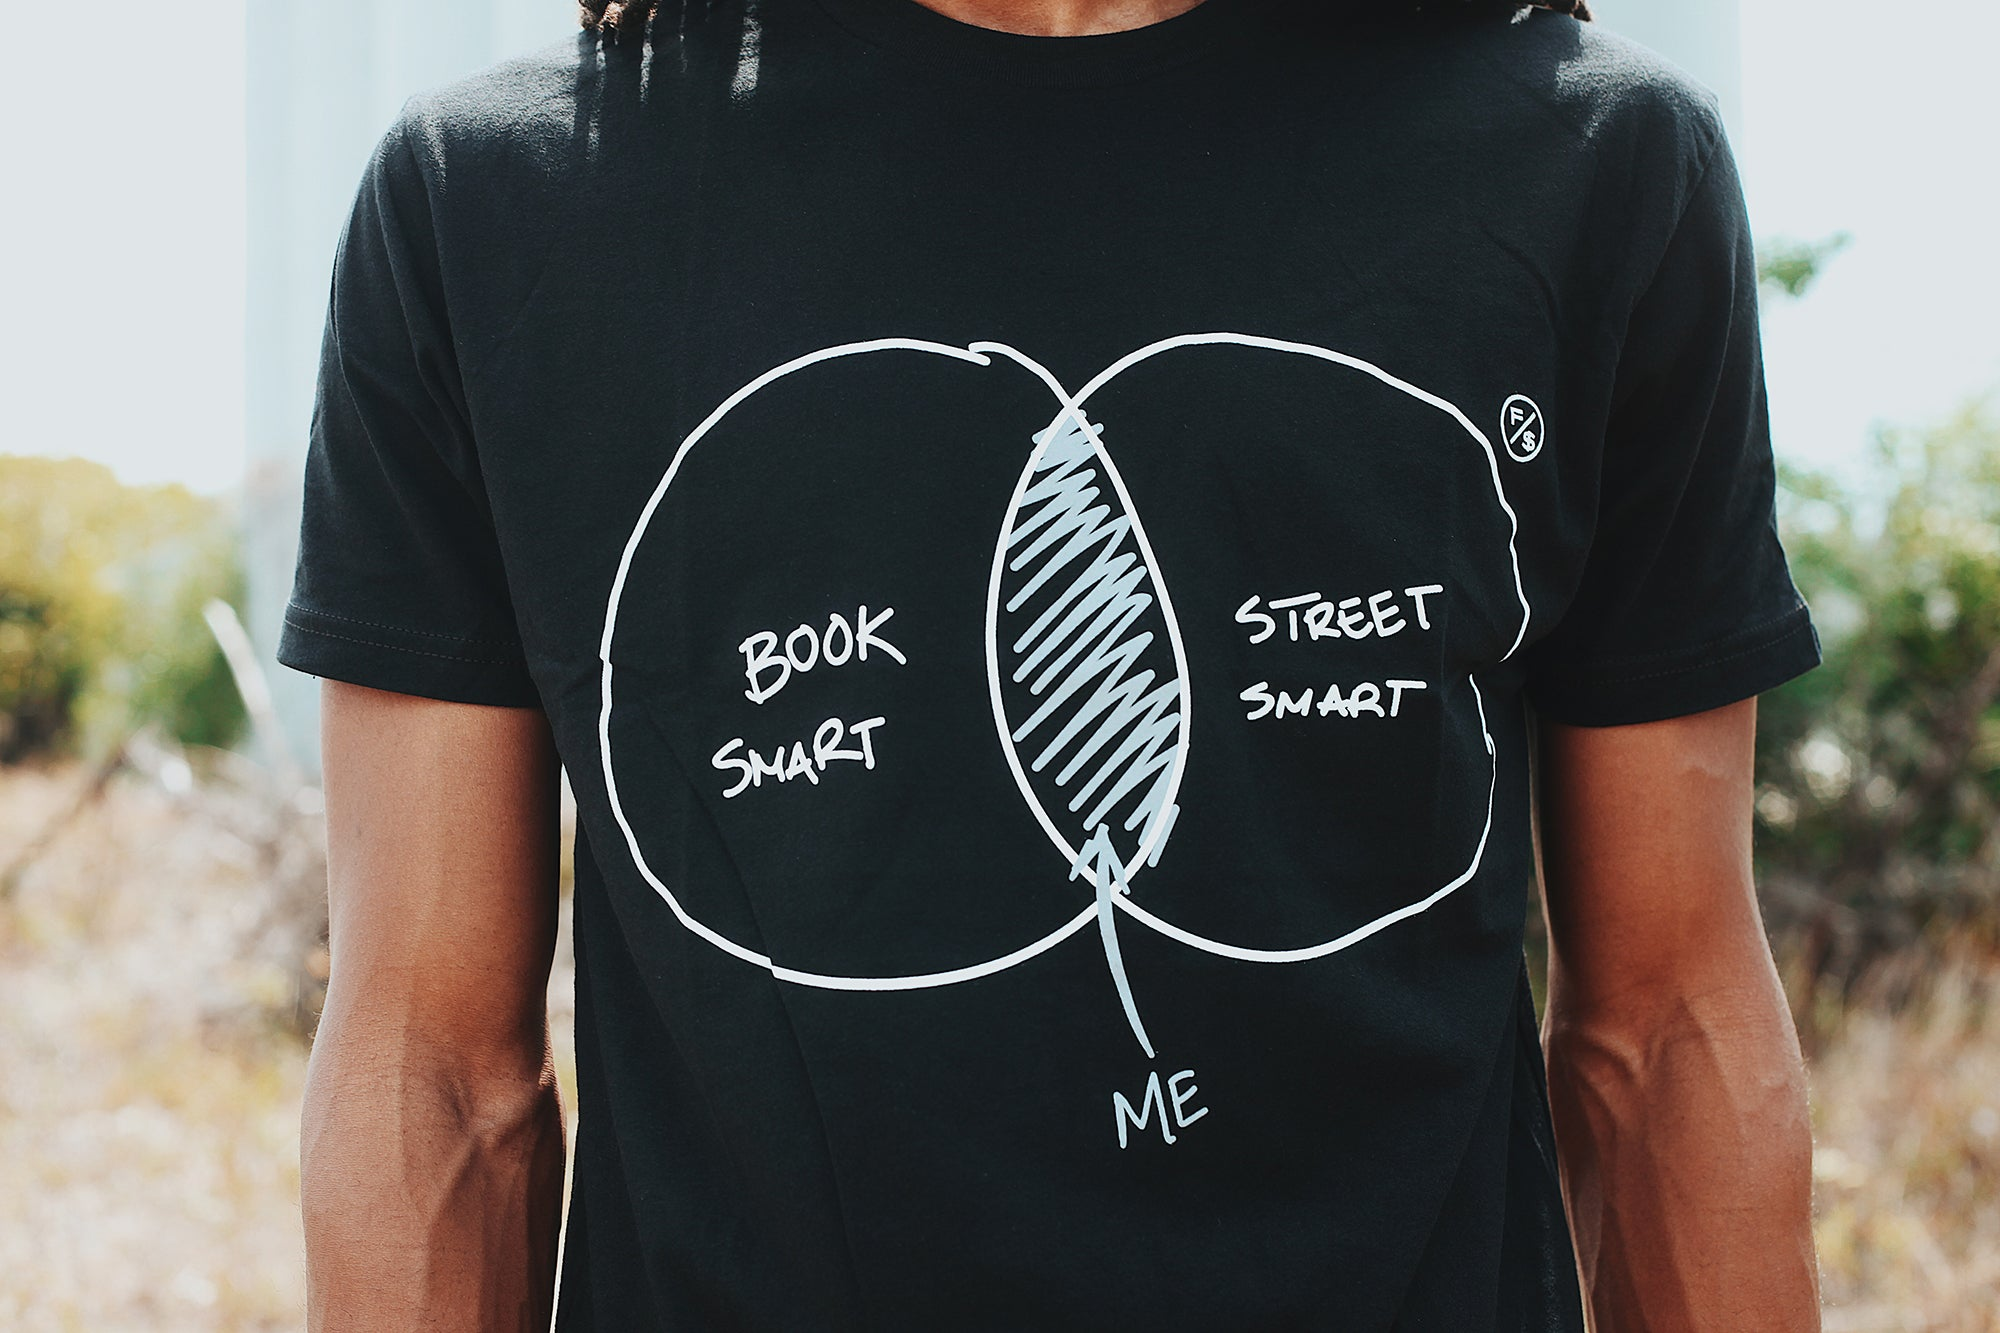 Book and Street Smart